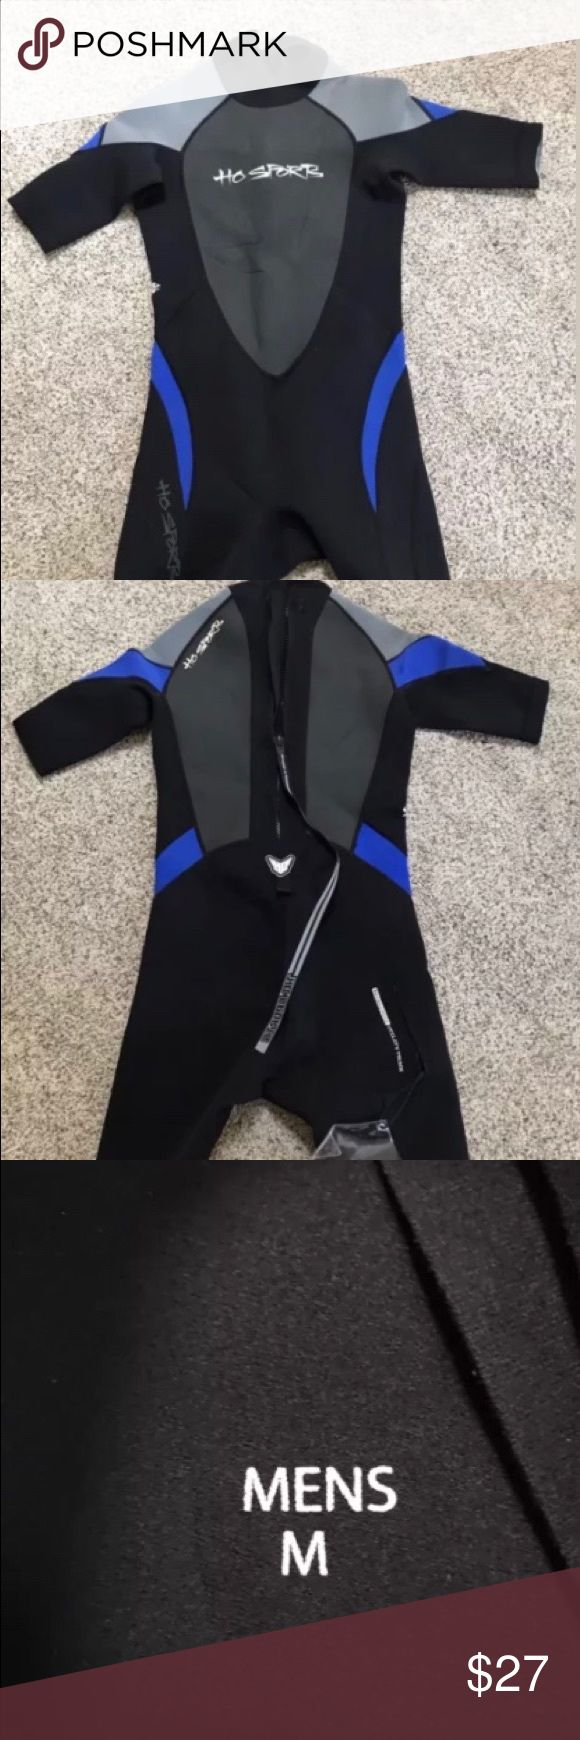 Ho Sports Mens Medium Wetsuit w/ Back Zipper Ho Sports Mens Medium Wetsuit Back Zipper Blue & Gray. Pre-Owned but In good condition. Ho Sports Swim